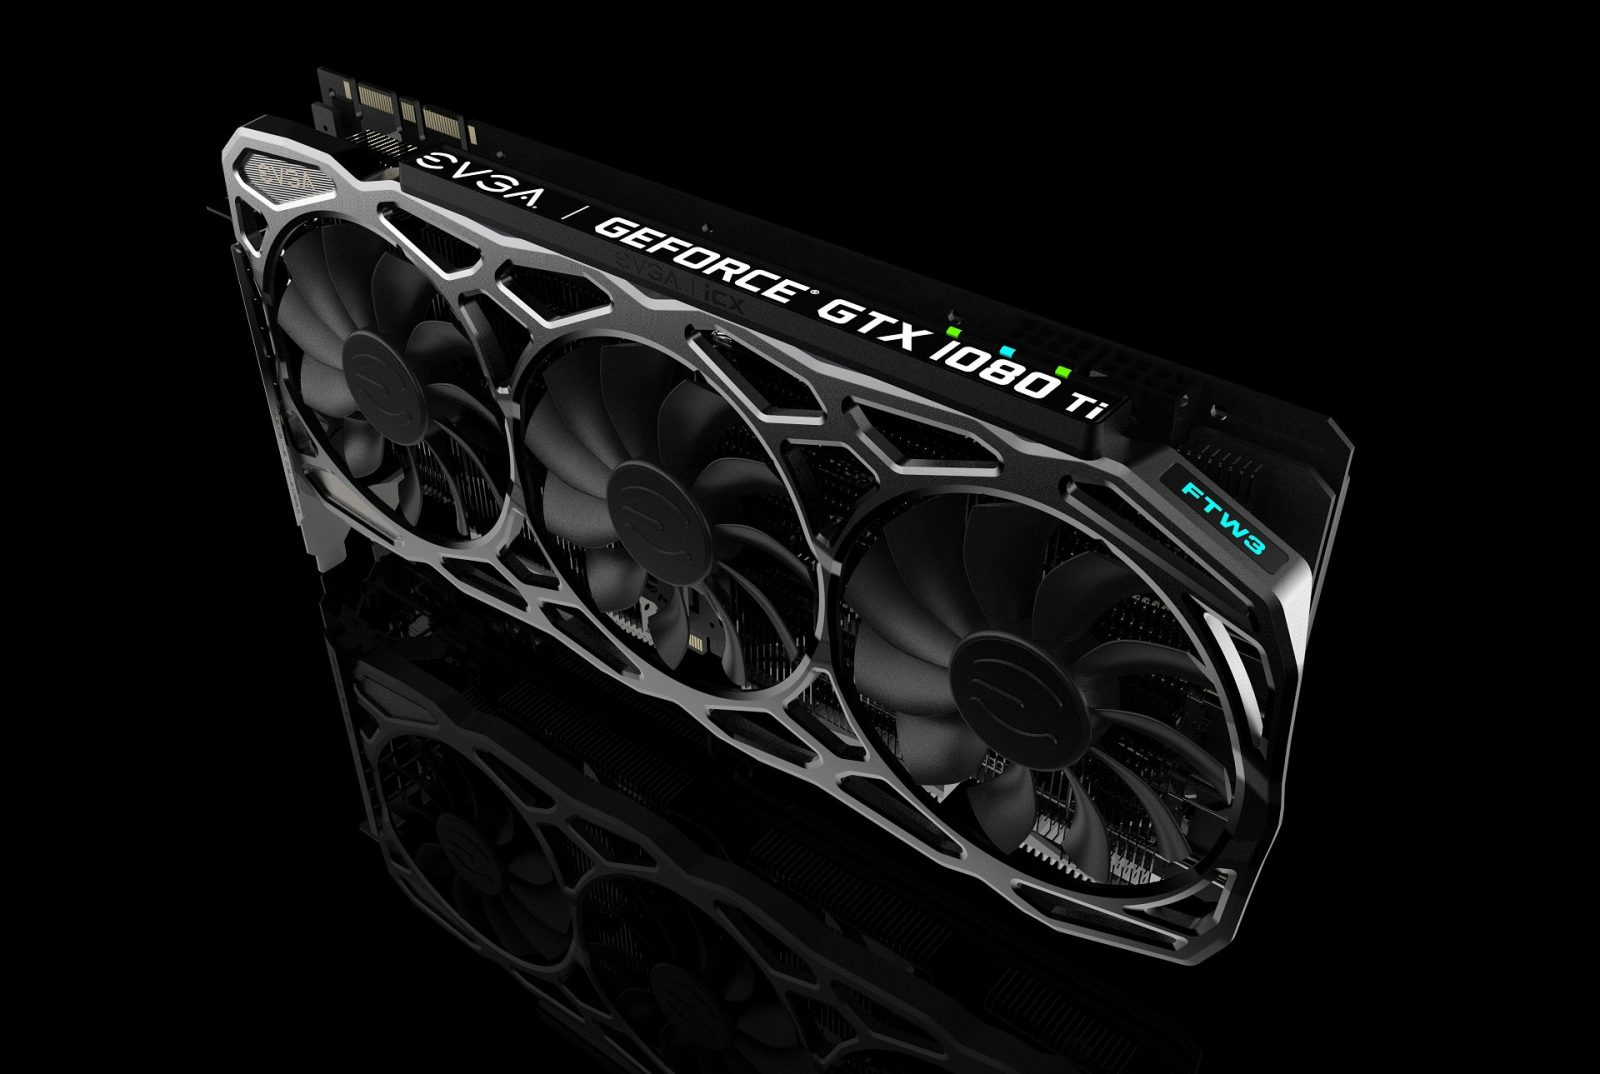 EVGA GeForce GTX 1080Ti FTW3 with new triple fan iCX Cooling Solution